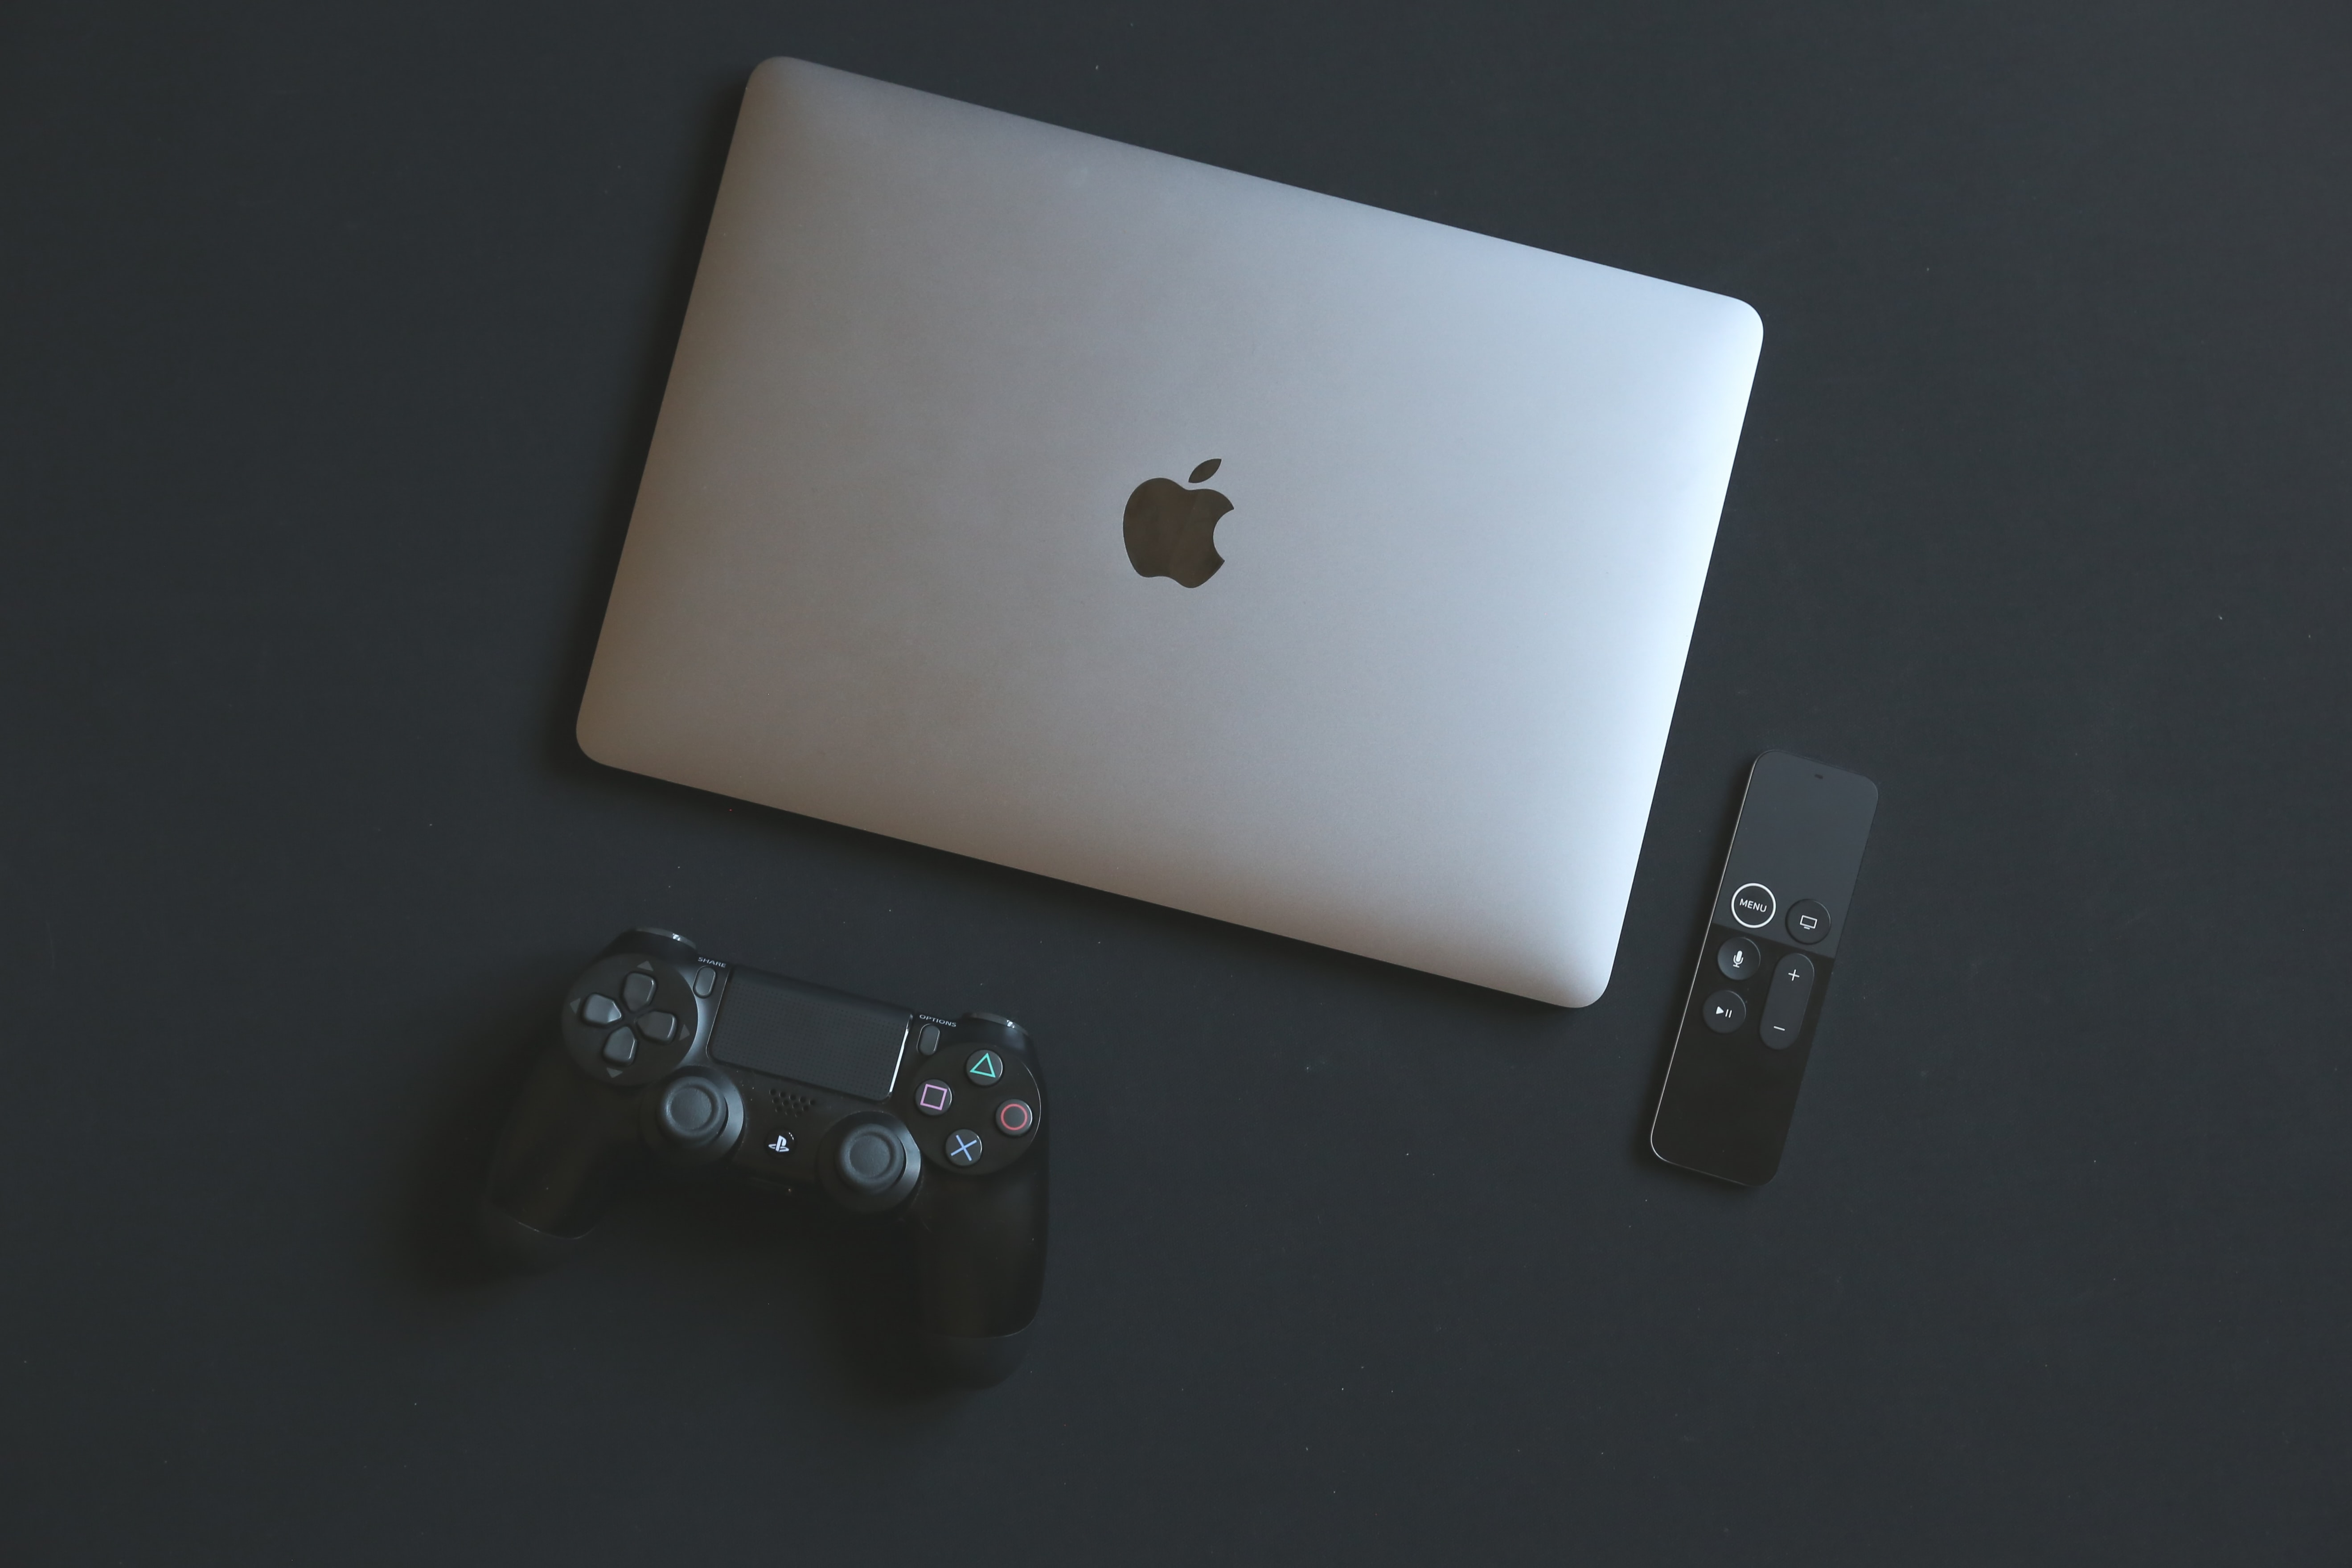 MacBook Pro and Sony PS4 controller